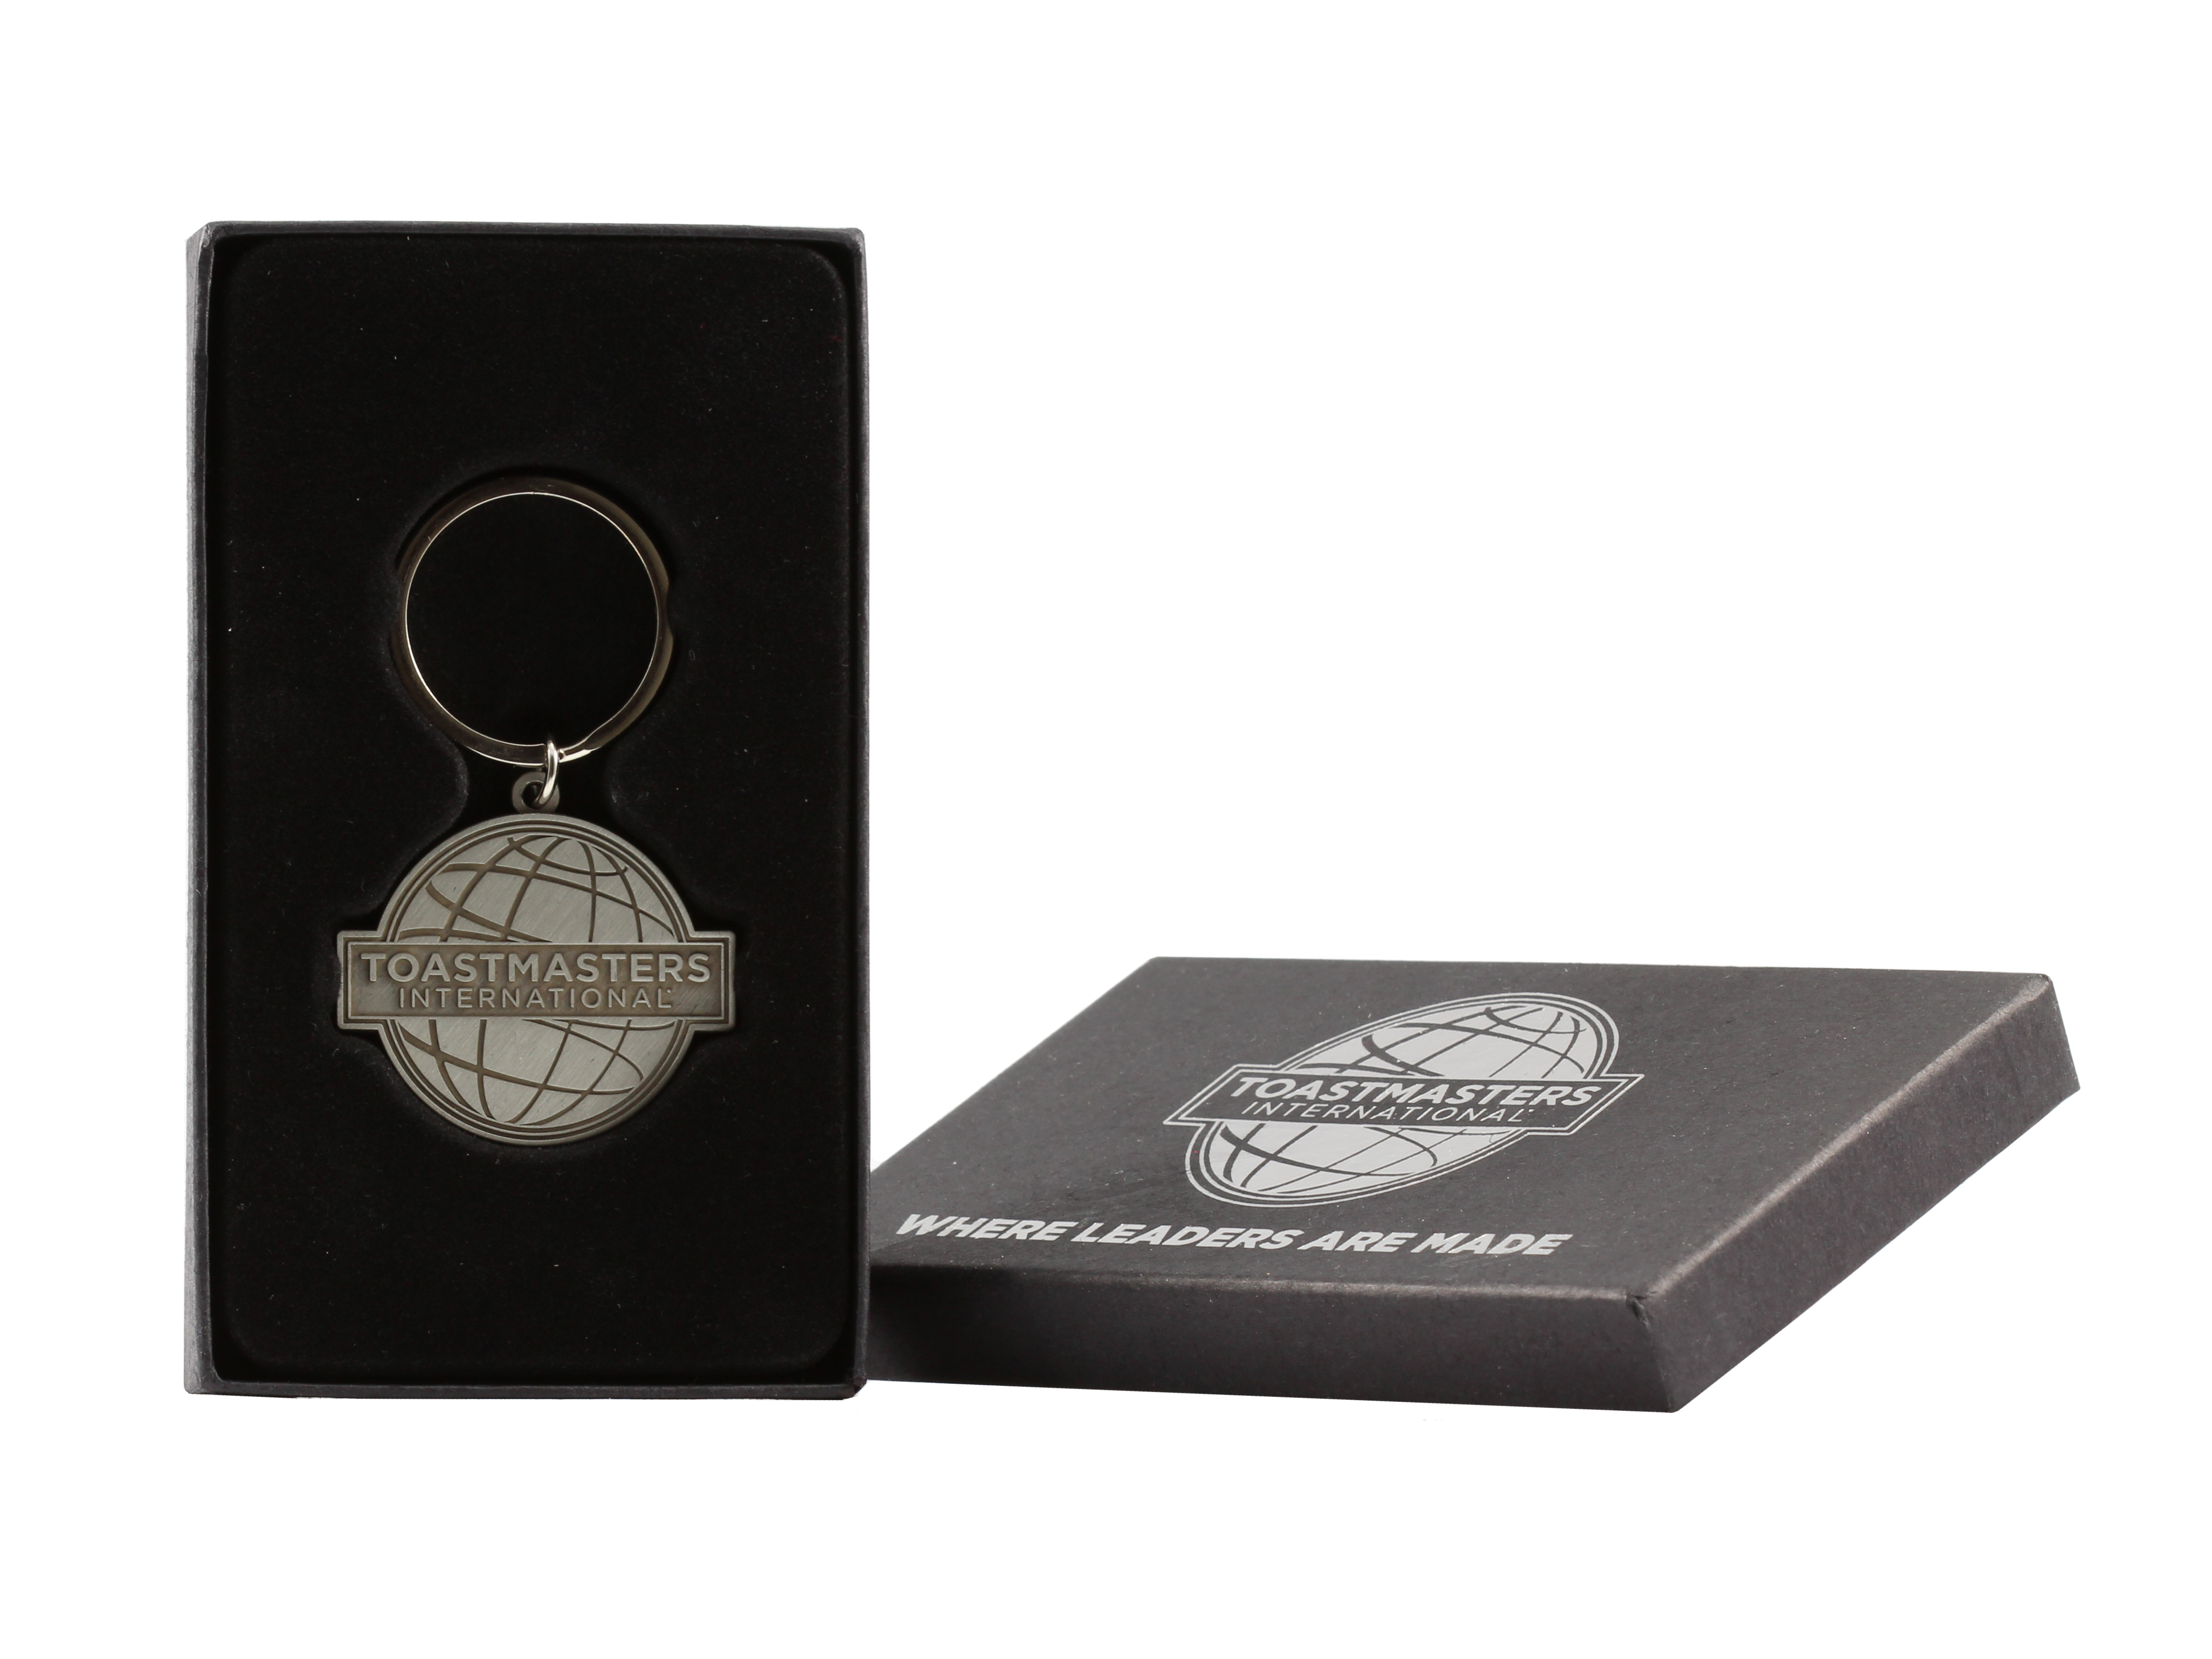 Toastmasters Key Ring